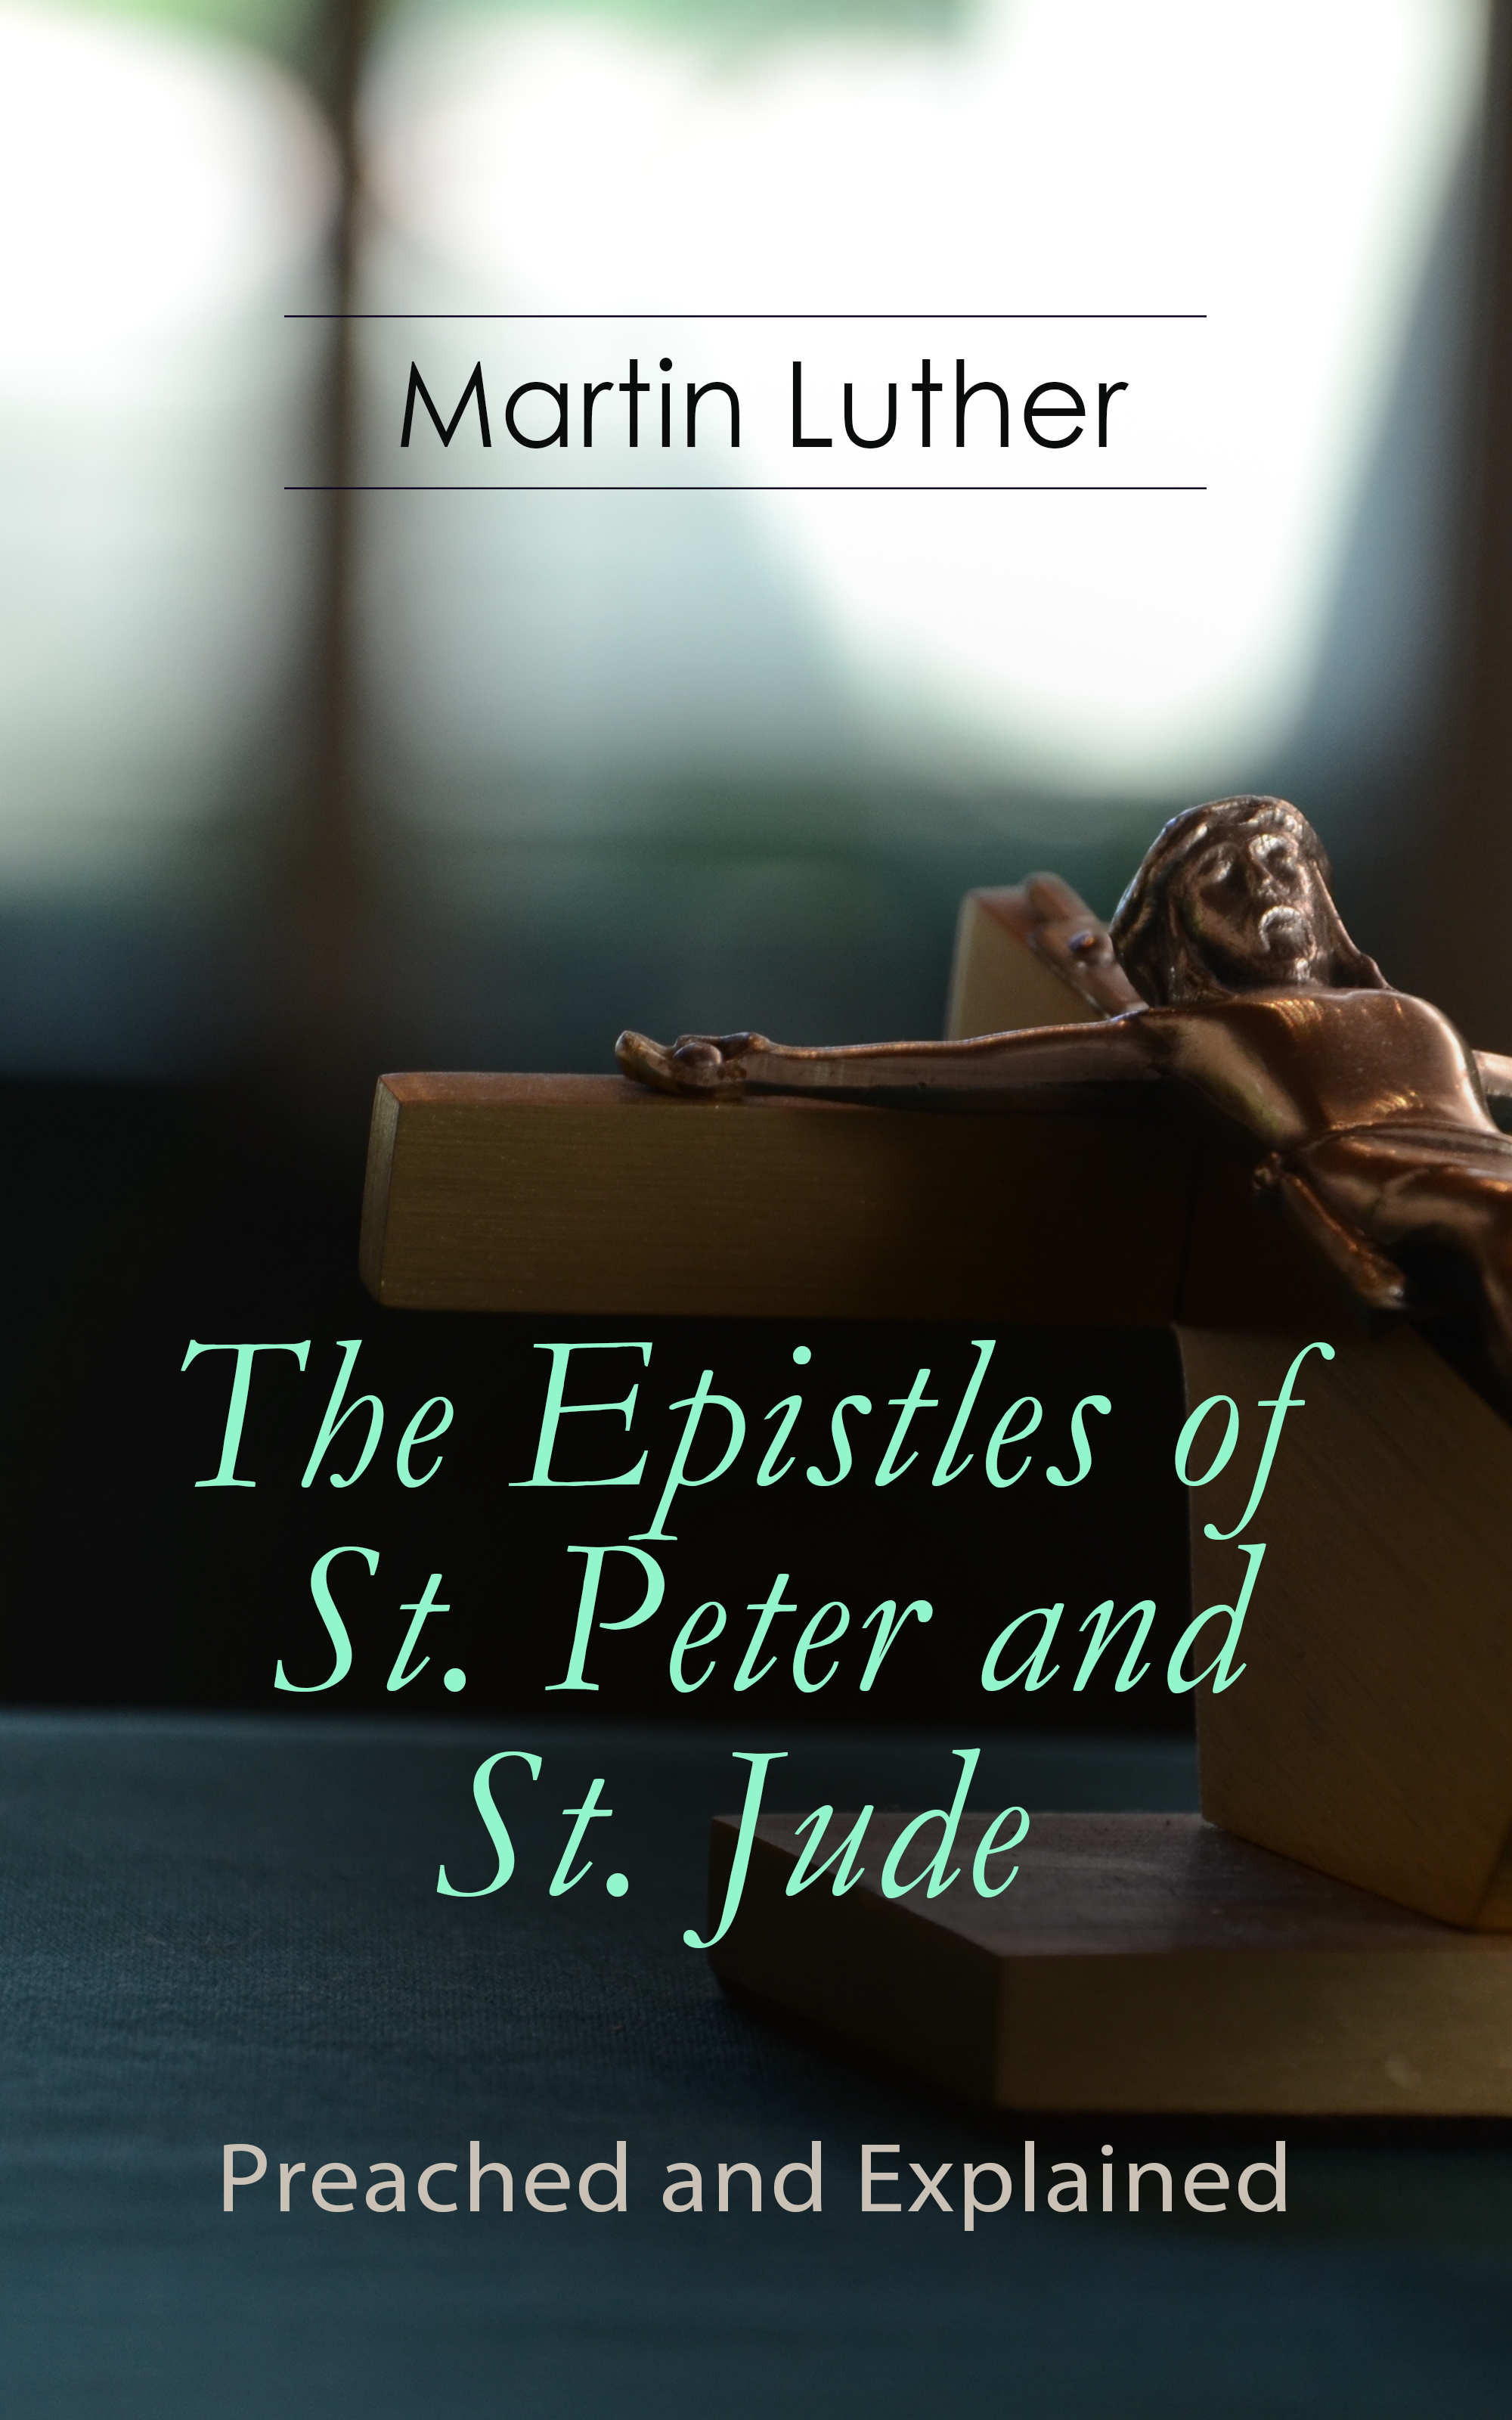 Martin Luther The Epistles of St. Peter and St. Jude - Preached and Explained martin luther the epistles of st peter and st jude preached and explained